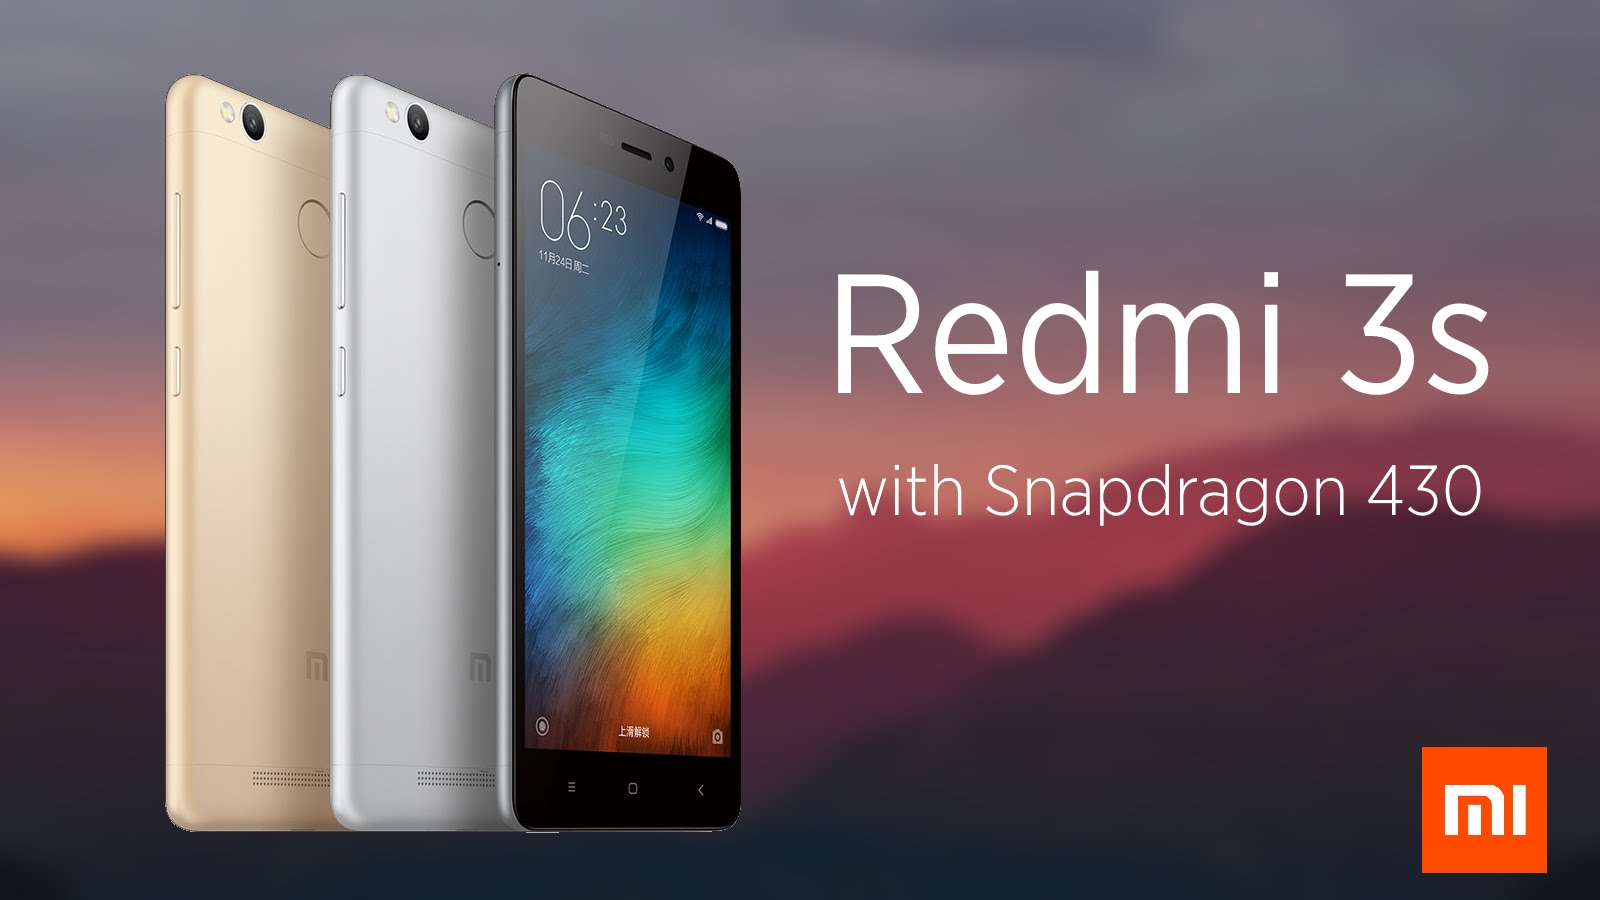 Over 1 million units of Xiaomi Redmi 3 S sold in India in